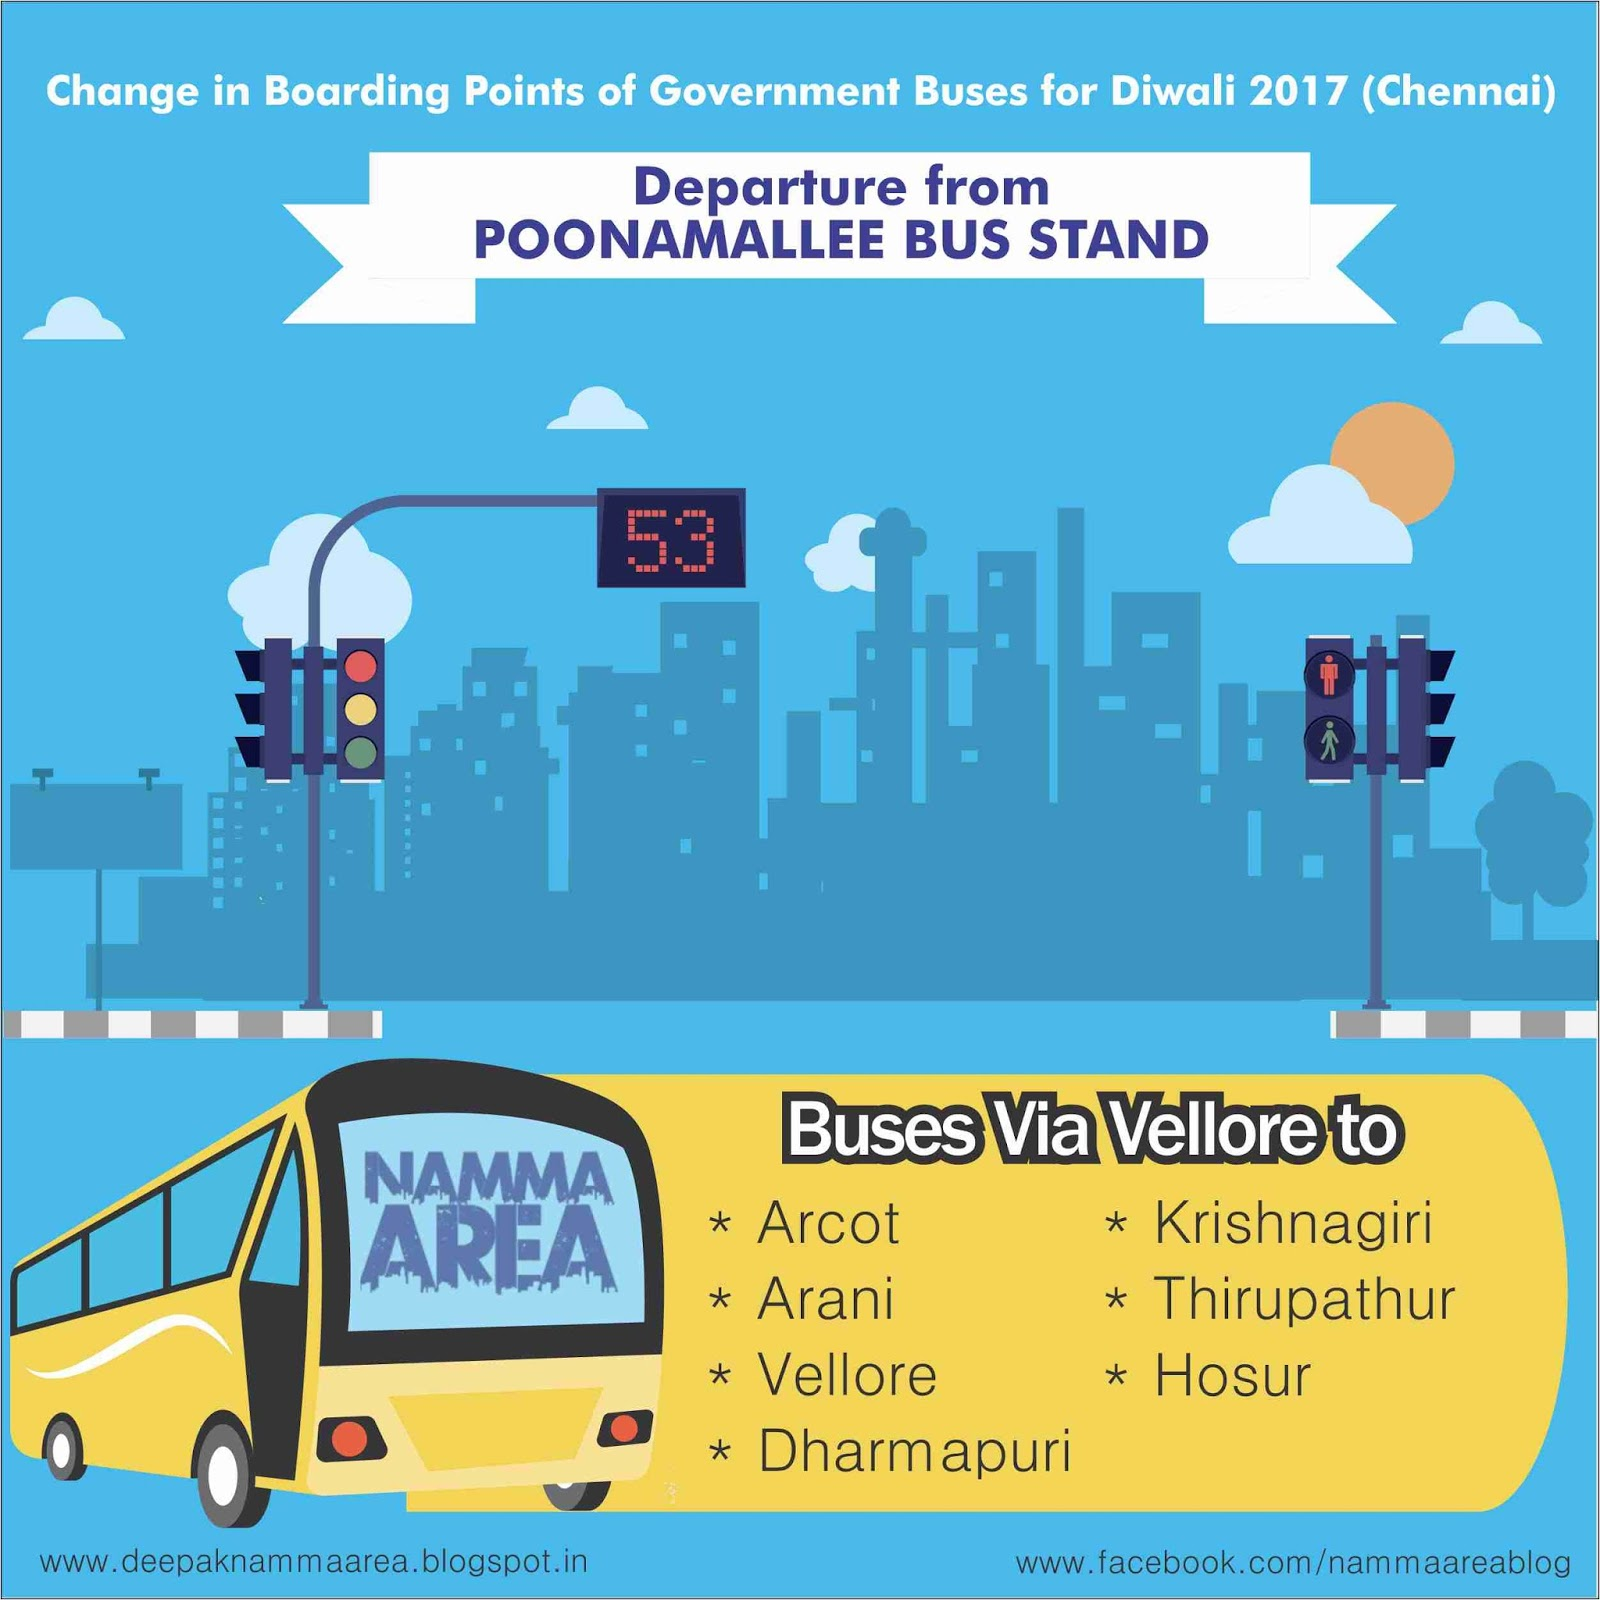 Change in Boarding Points of Government Buses for Diwali